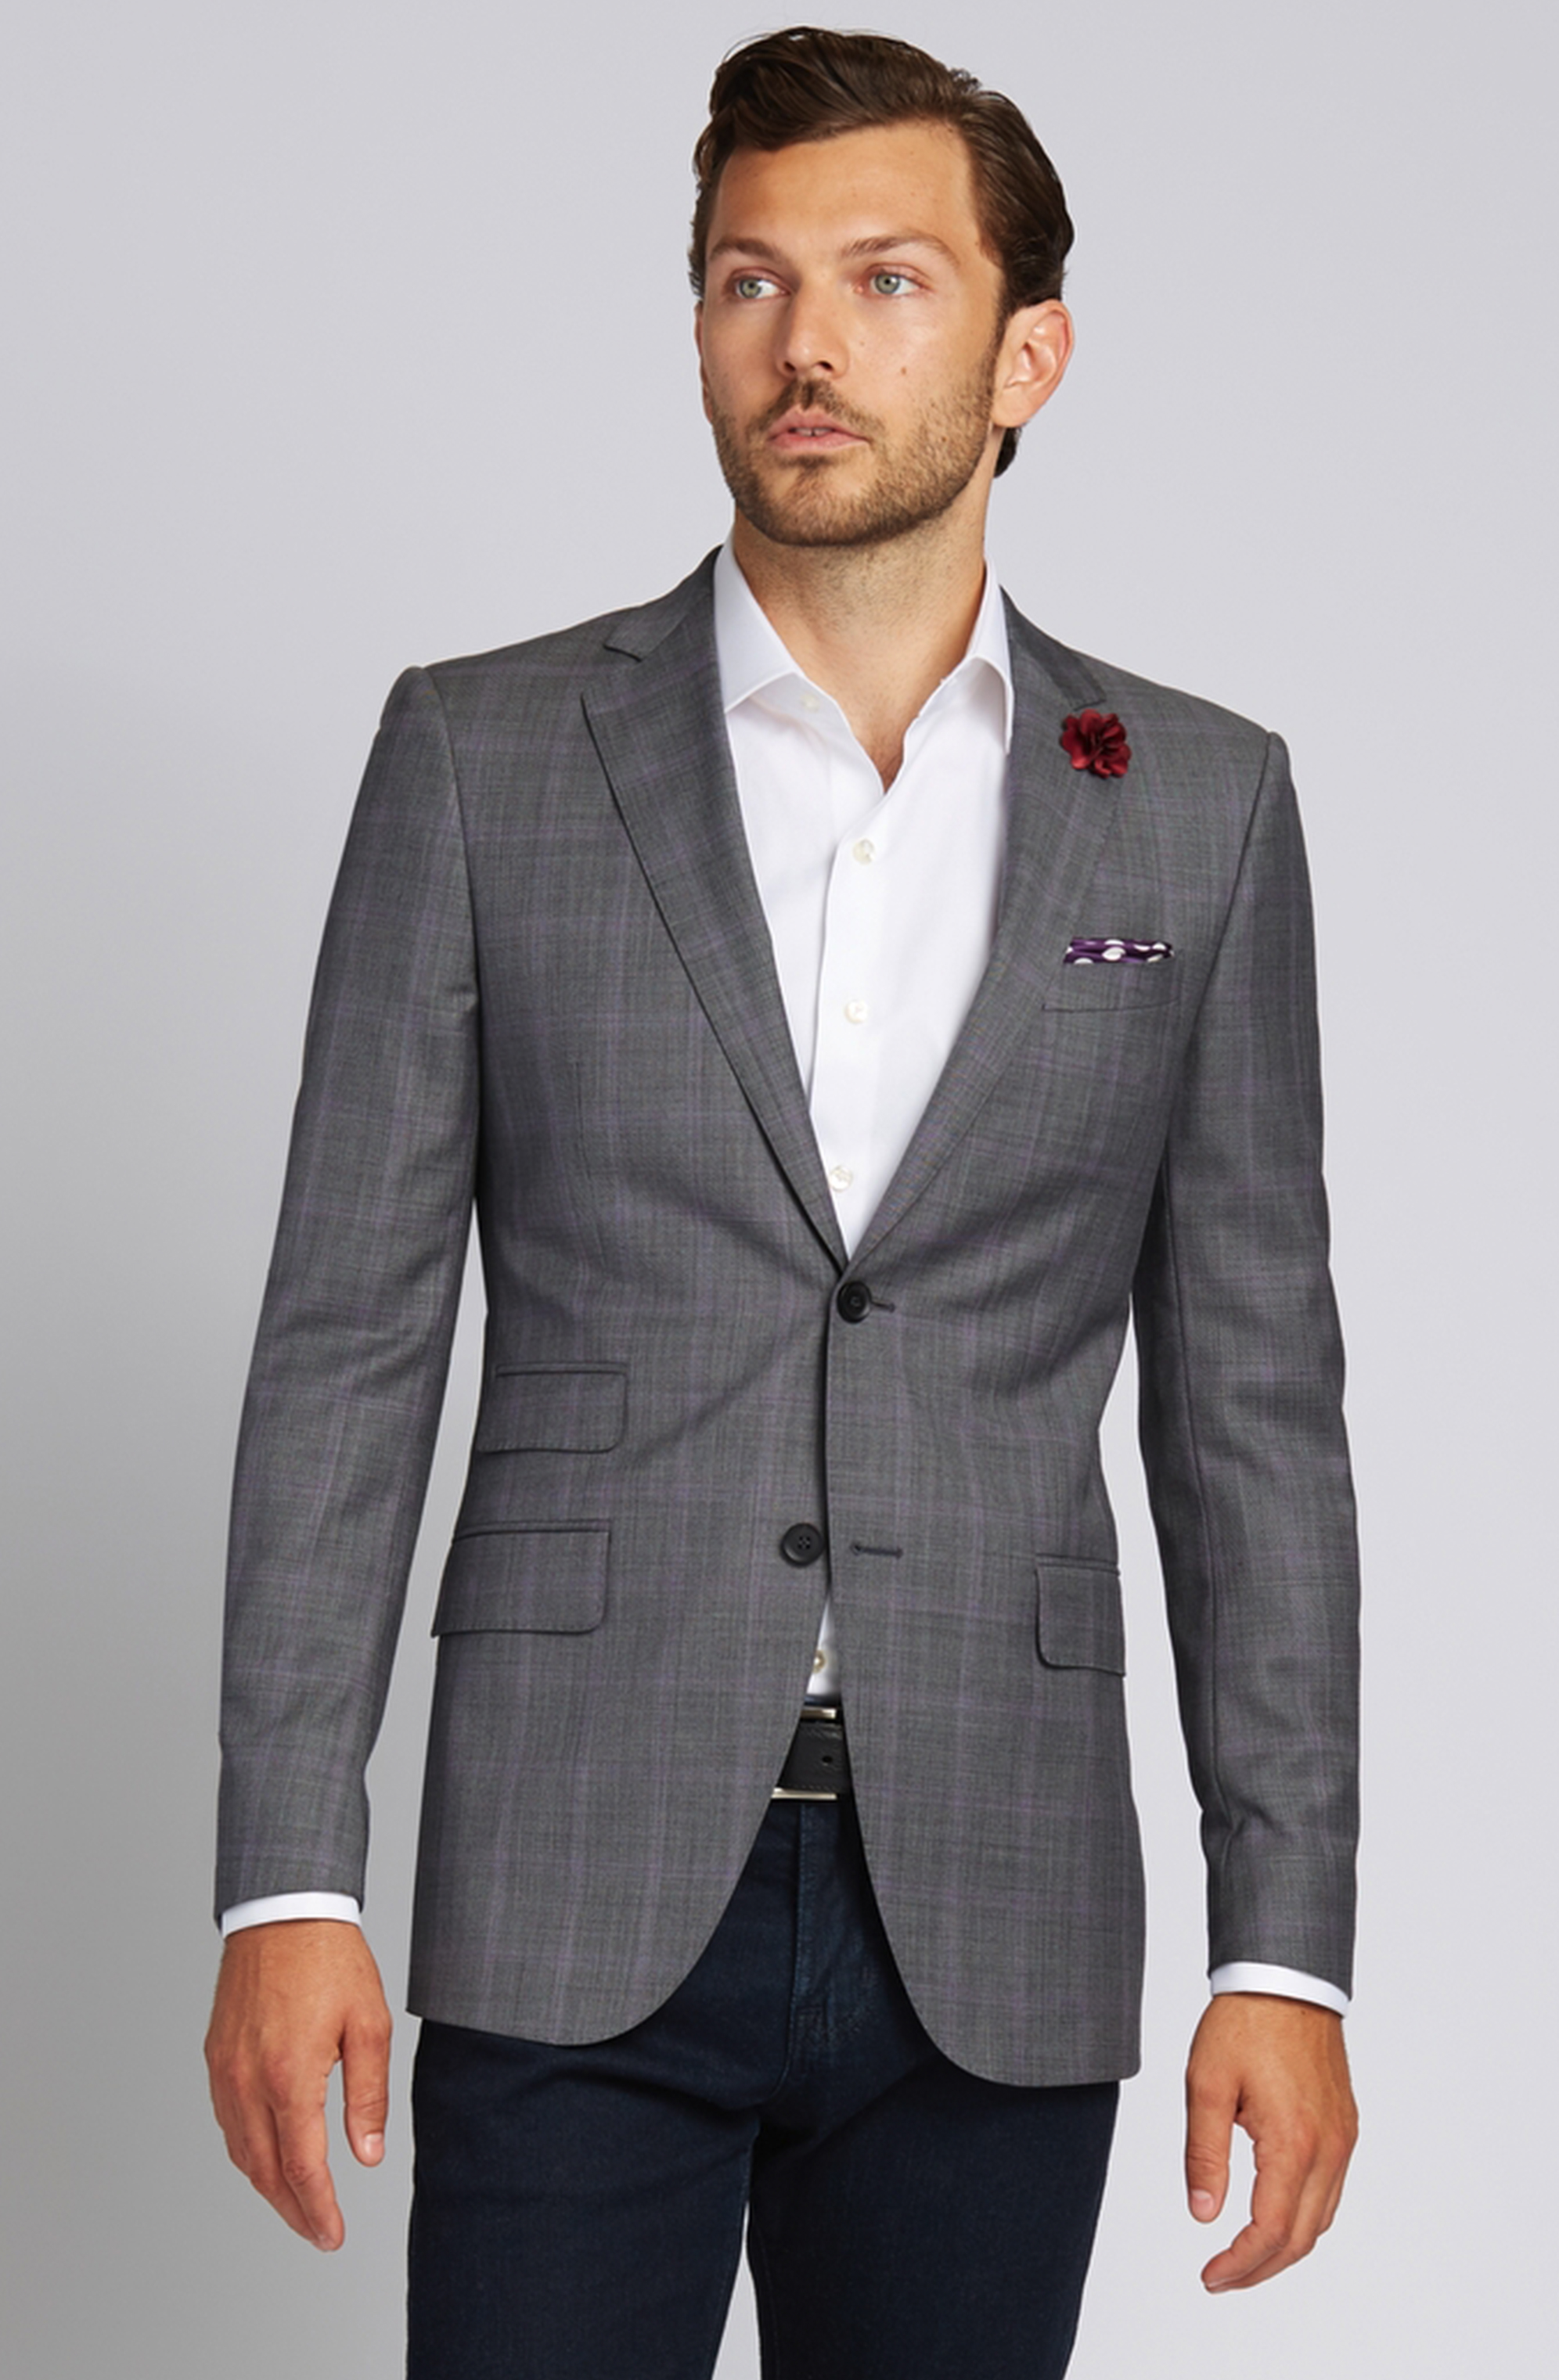 Slim-Fit Super 130s Wool Jacket in Grey with Lavender Glen Plaid